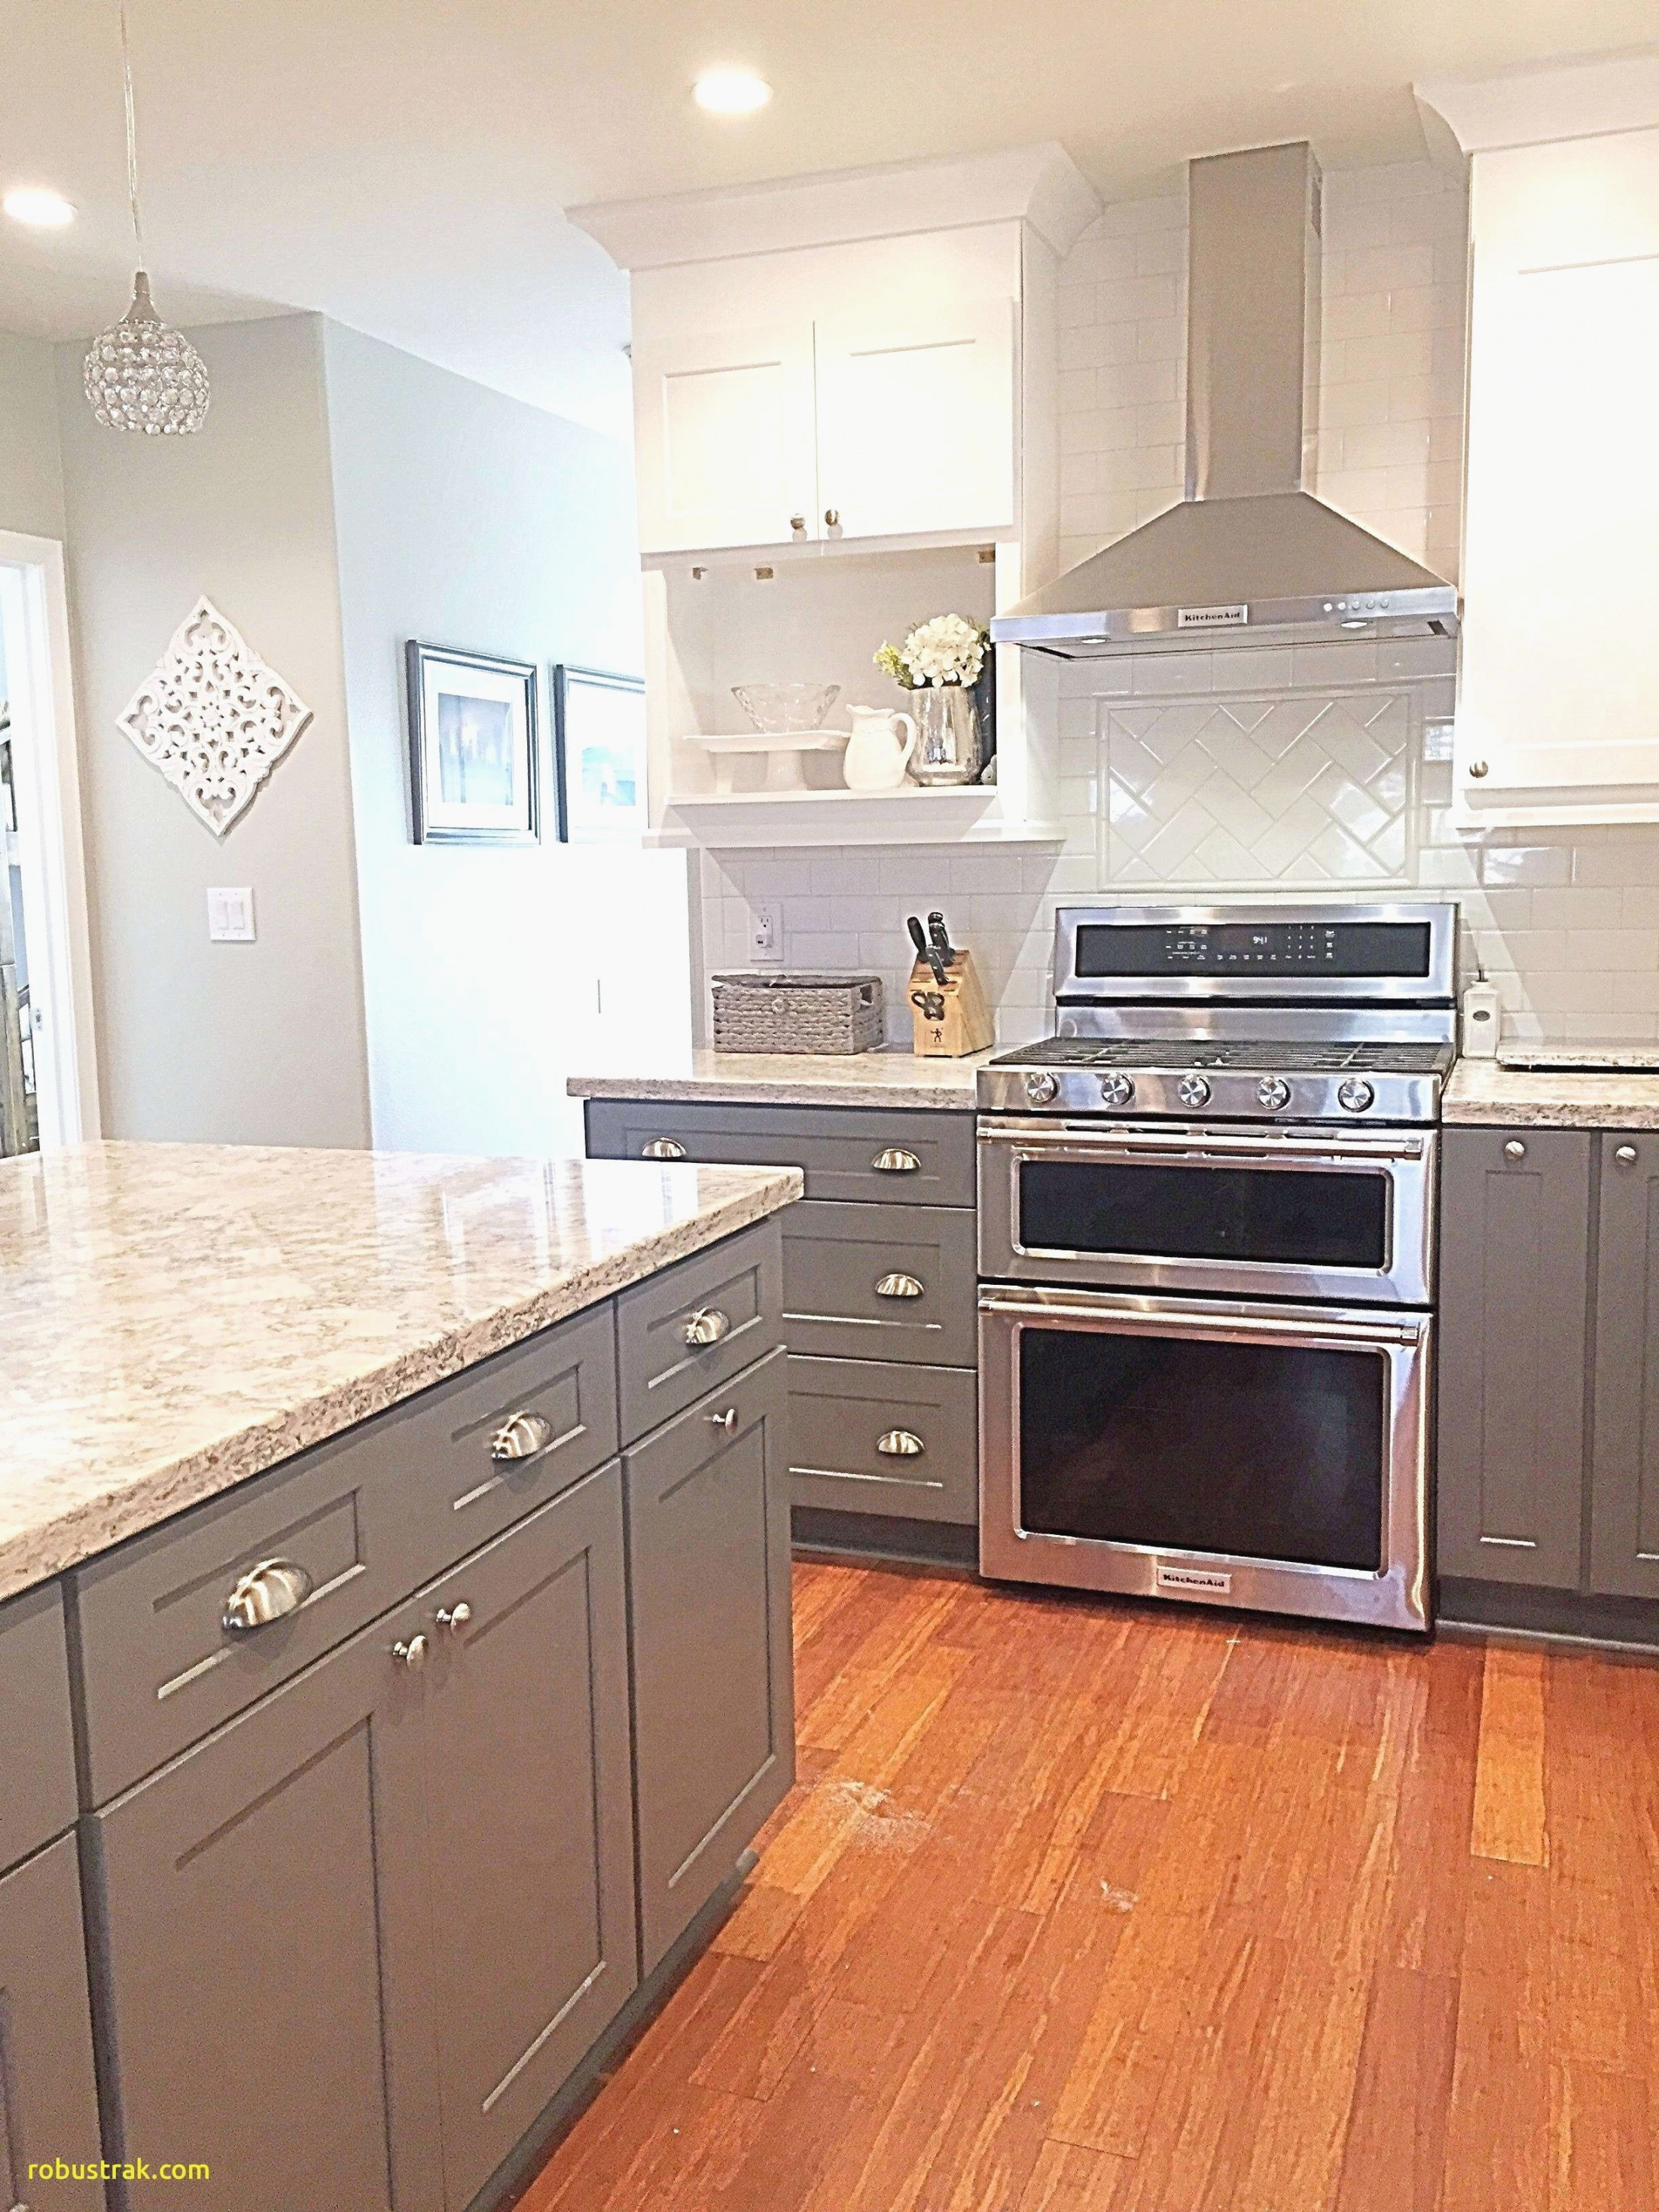 staining hardwood floors darker of different stains on oak cabinets design haccptemperature with regard to 30 new kitchen cabinet stain colors stock home ideas